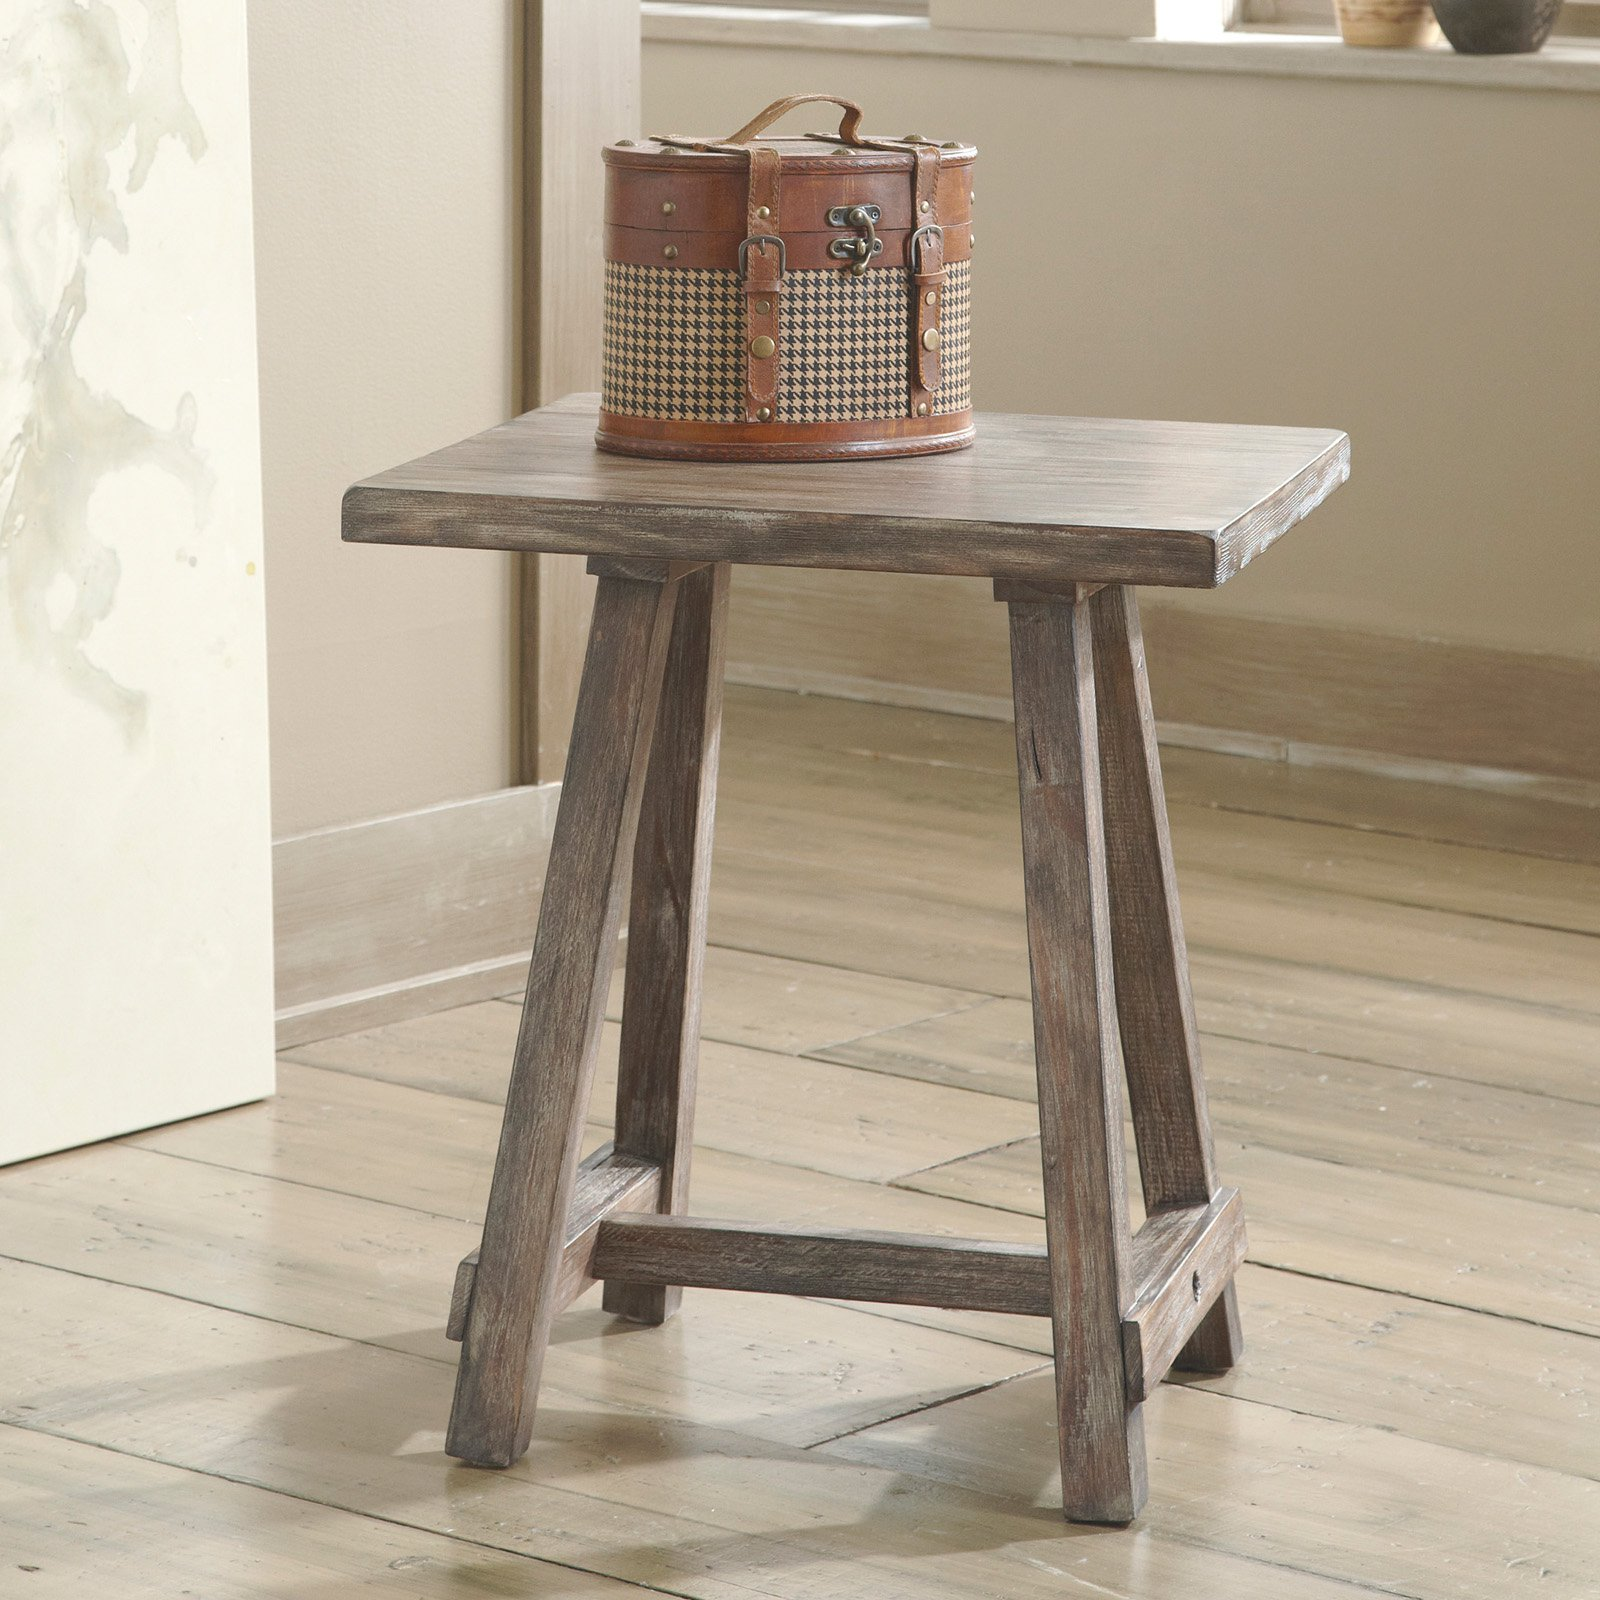 Signature Design By Ashley Rustic Accents Brown Chair Side End Table Walmart Com